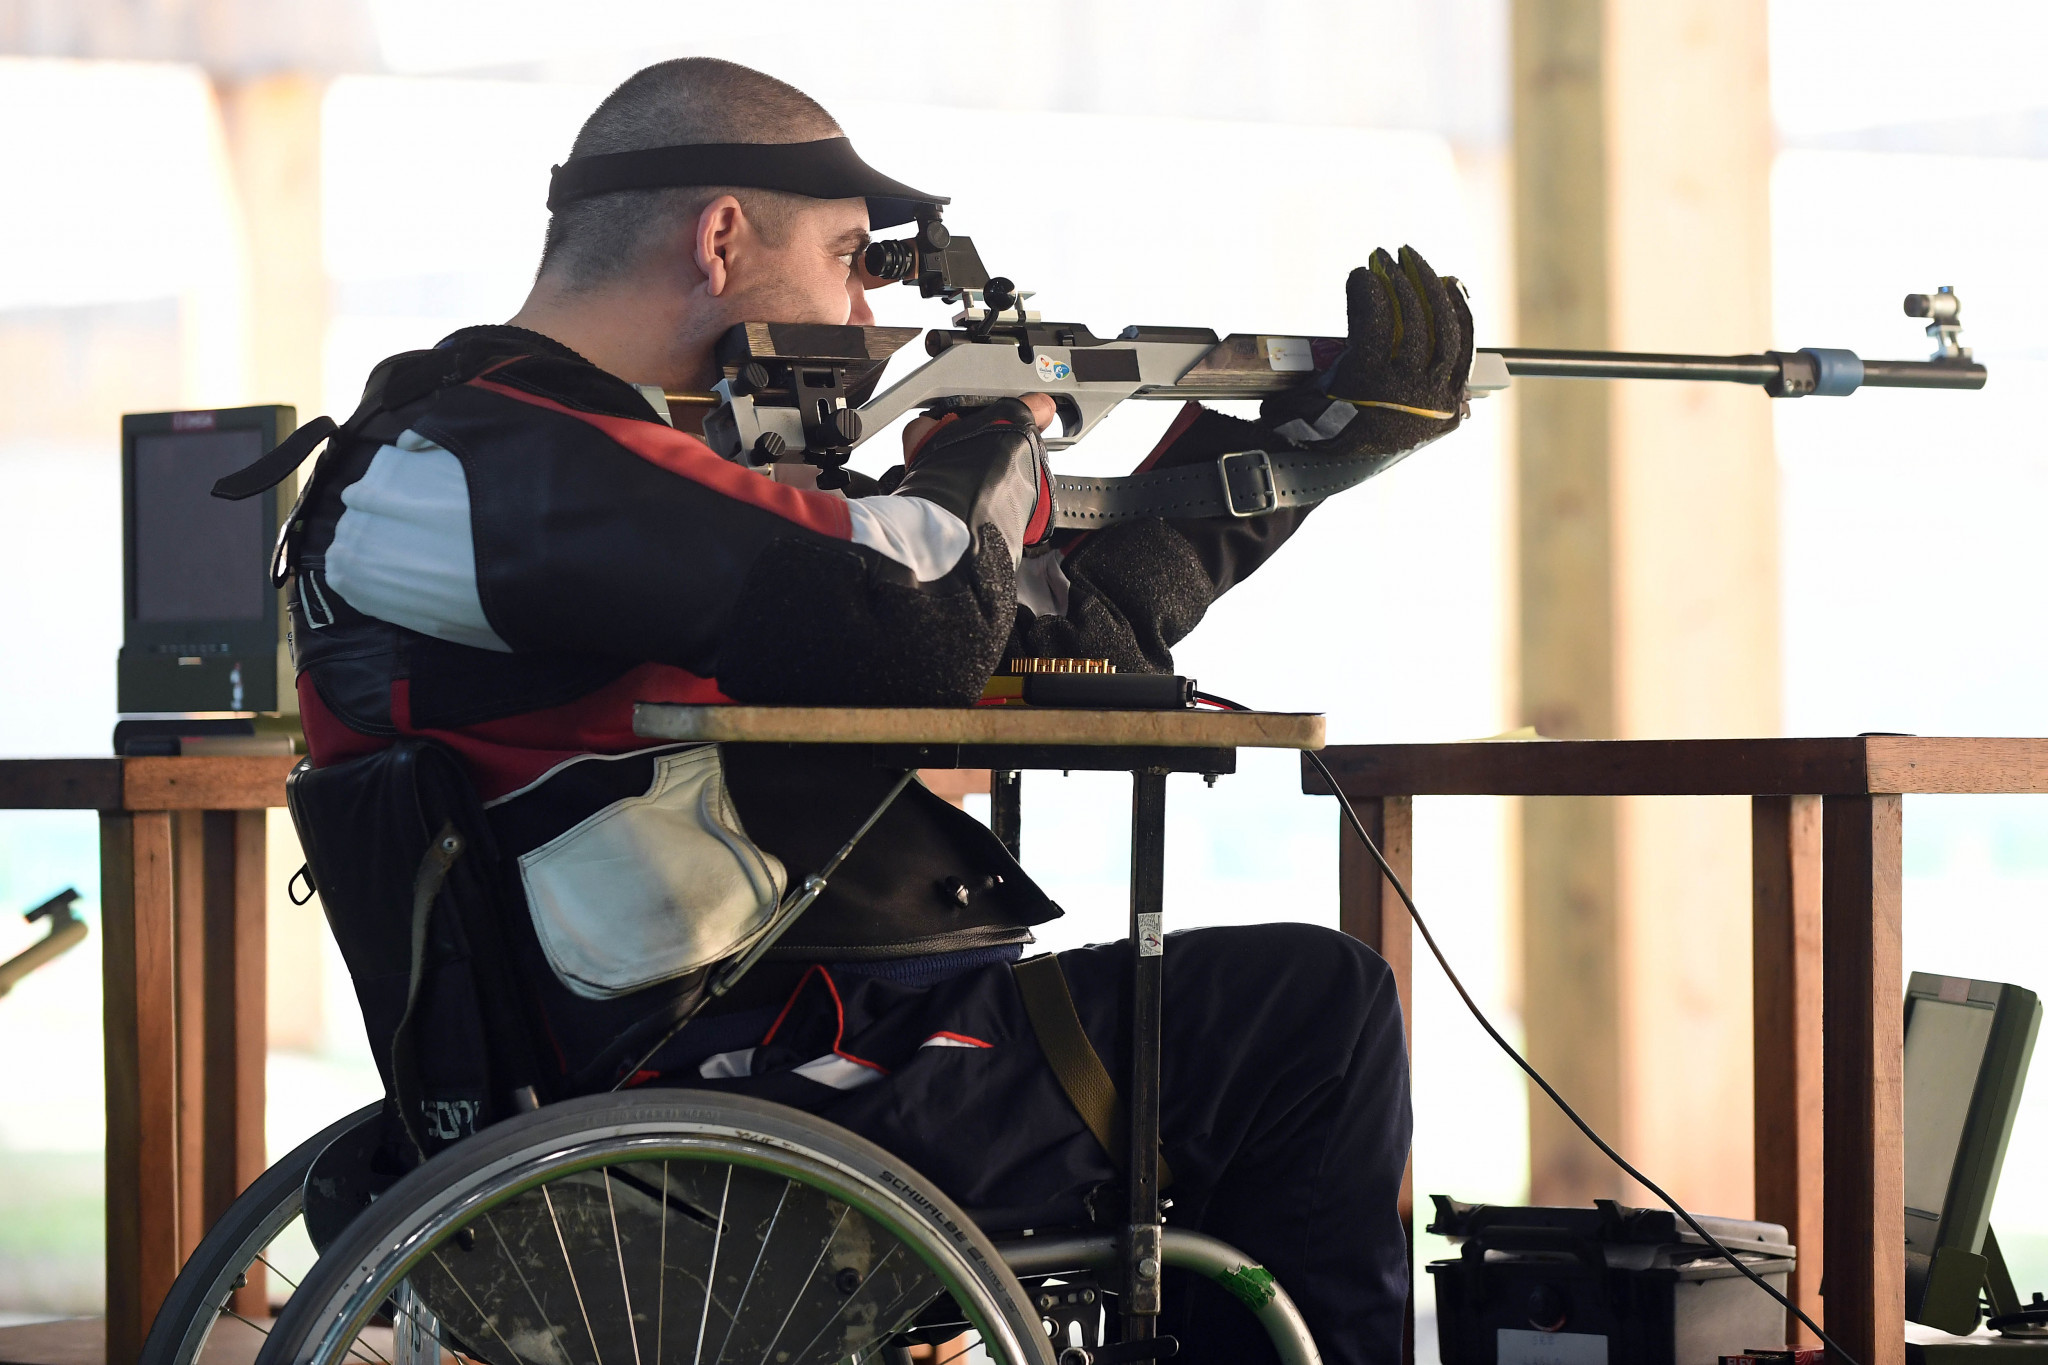 Home shooter Laslo Suranji ended the Grand Prix with two bronze medals ©Getty Images